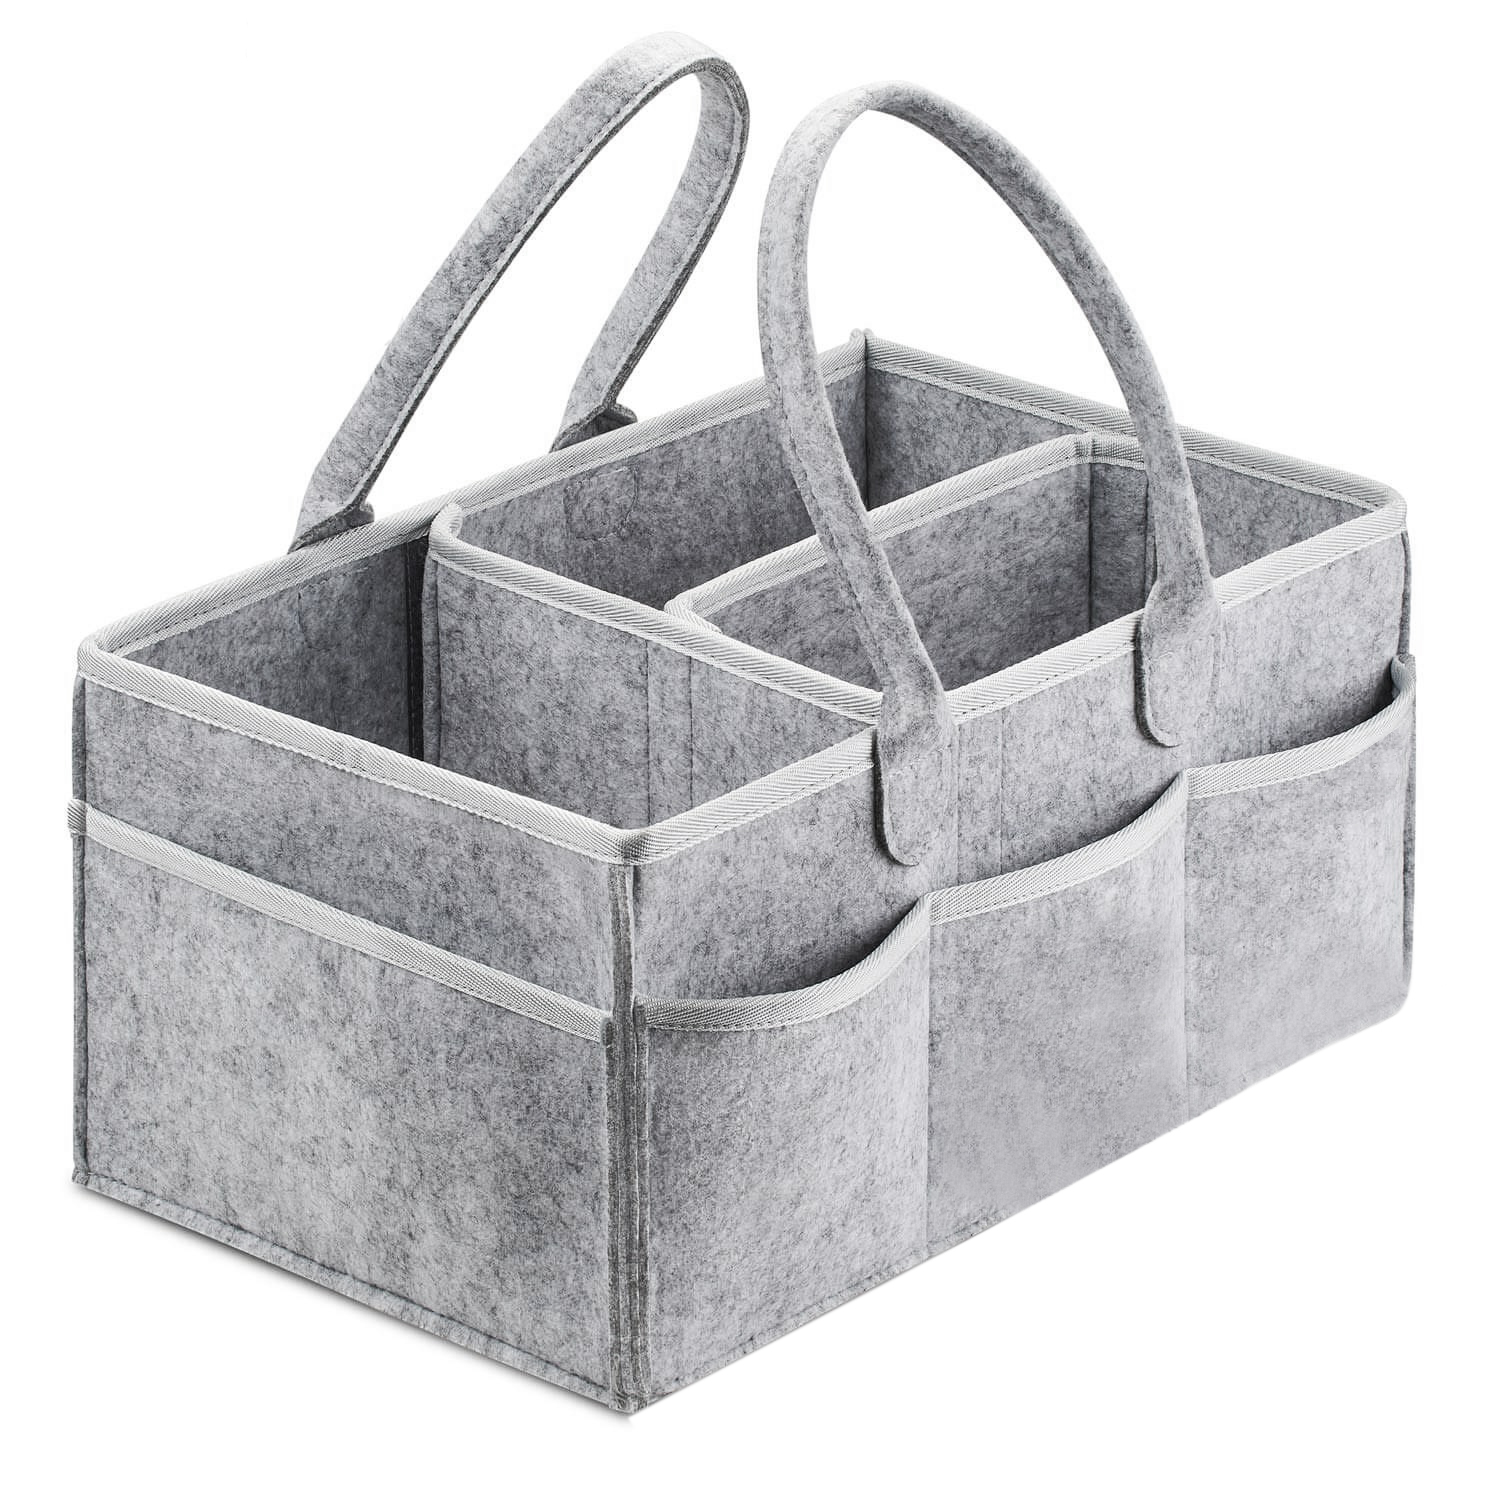 1x Baby Diaper Organizer Caddy Changing Nappy Carrier Storage Bag Basket Outdoor